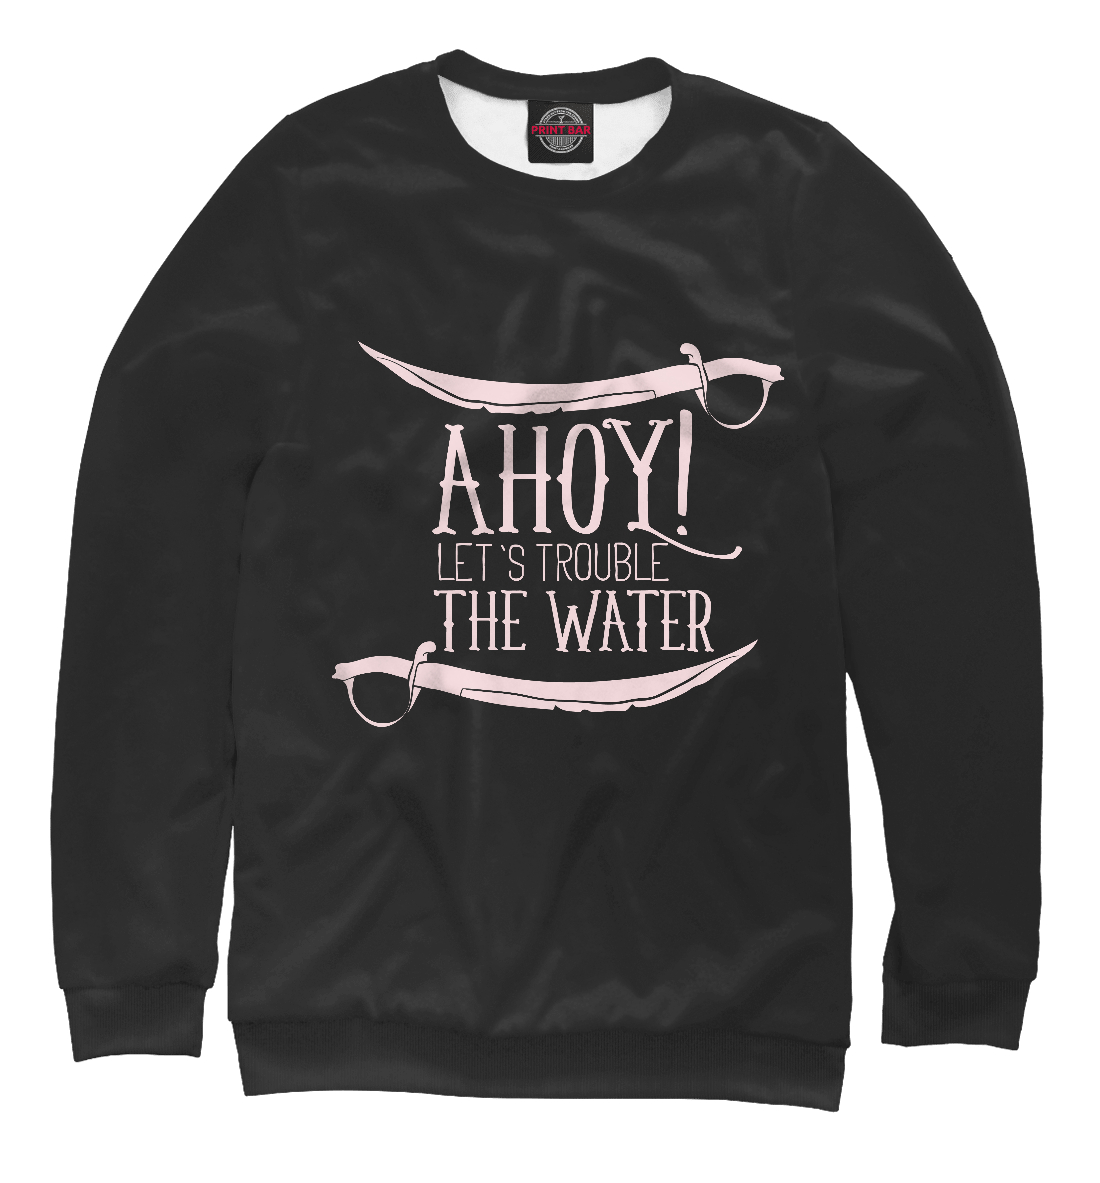 Ahoy! Let`s trouble the water